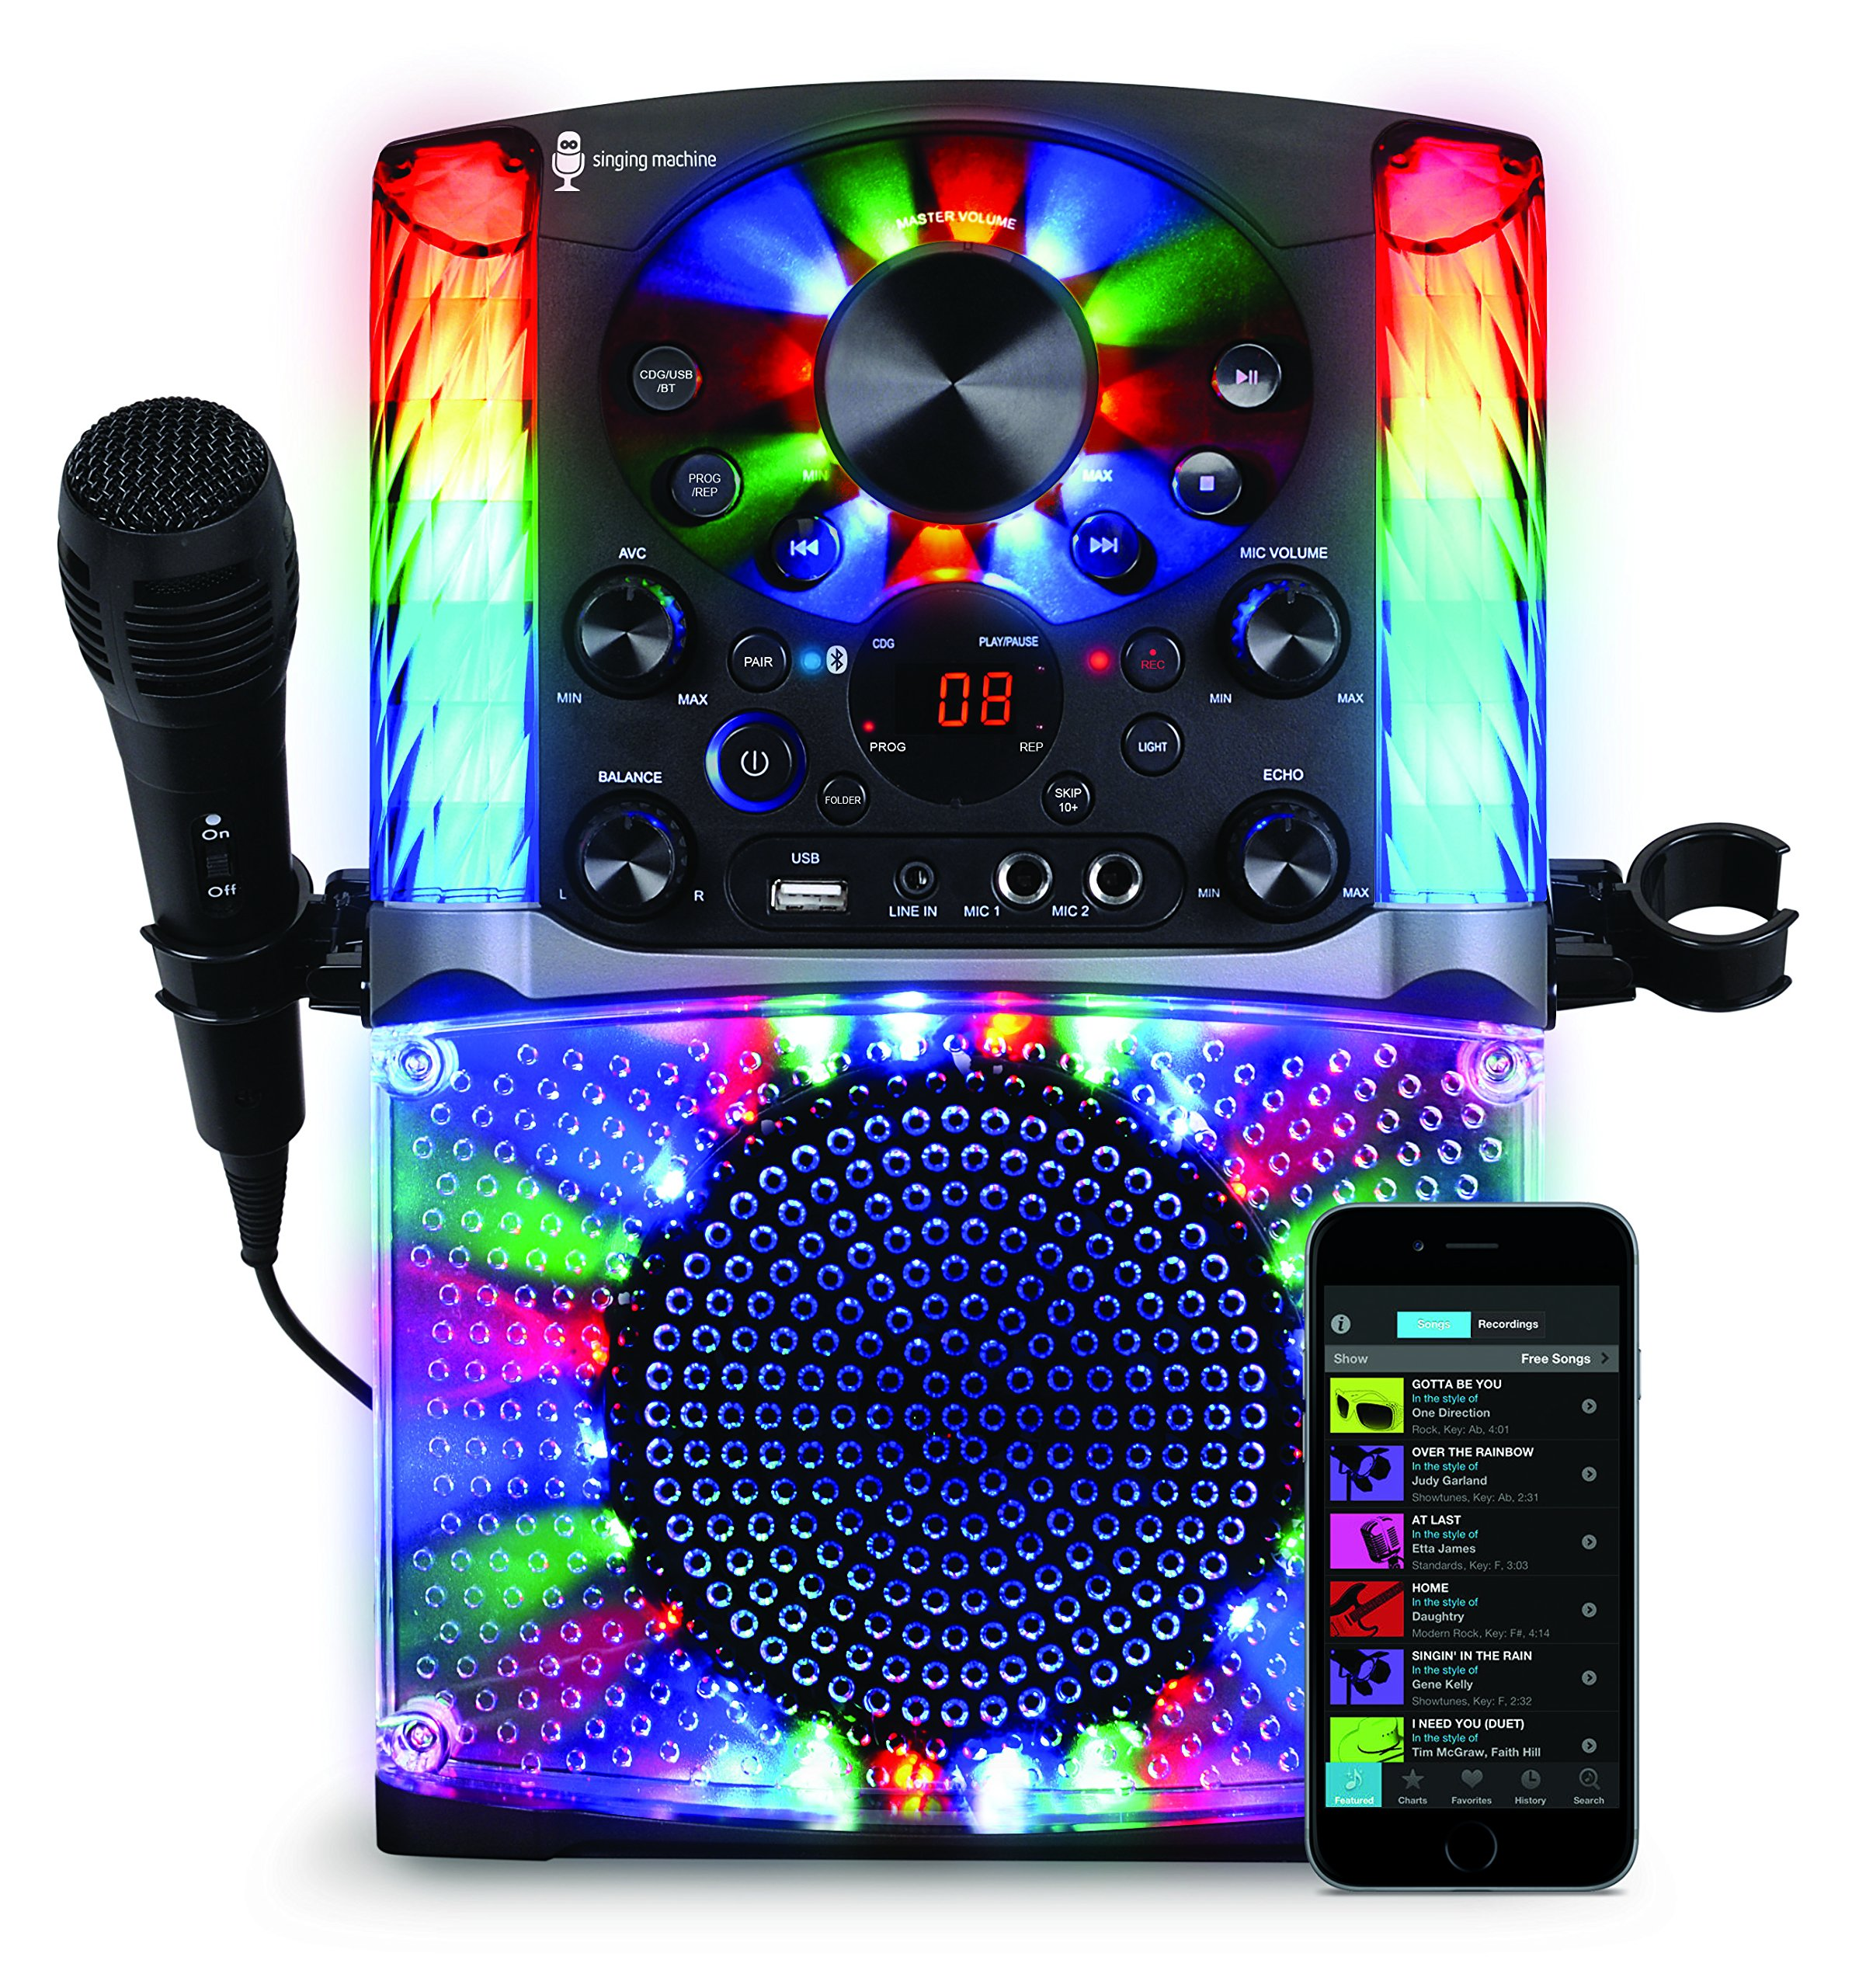 Singing Machine SML625BTBK Bluetooth CD+G Karaoke System Black by Singing Machine (Image #1)